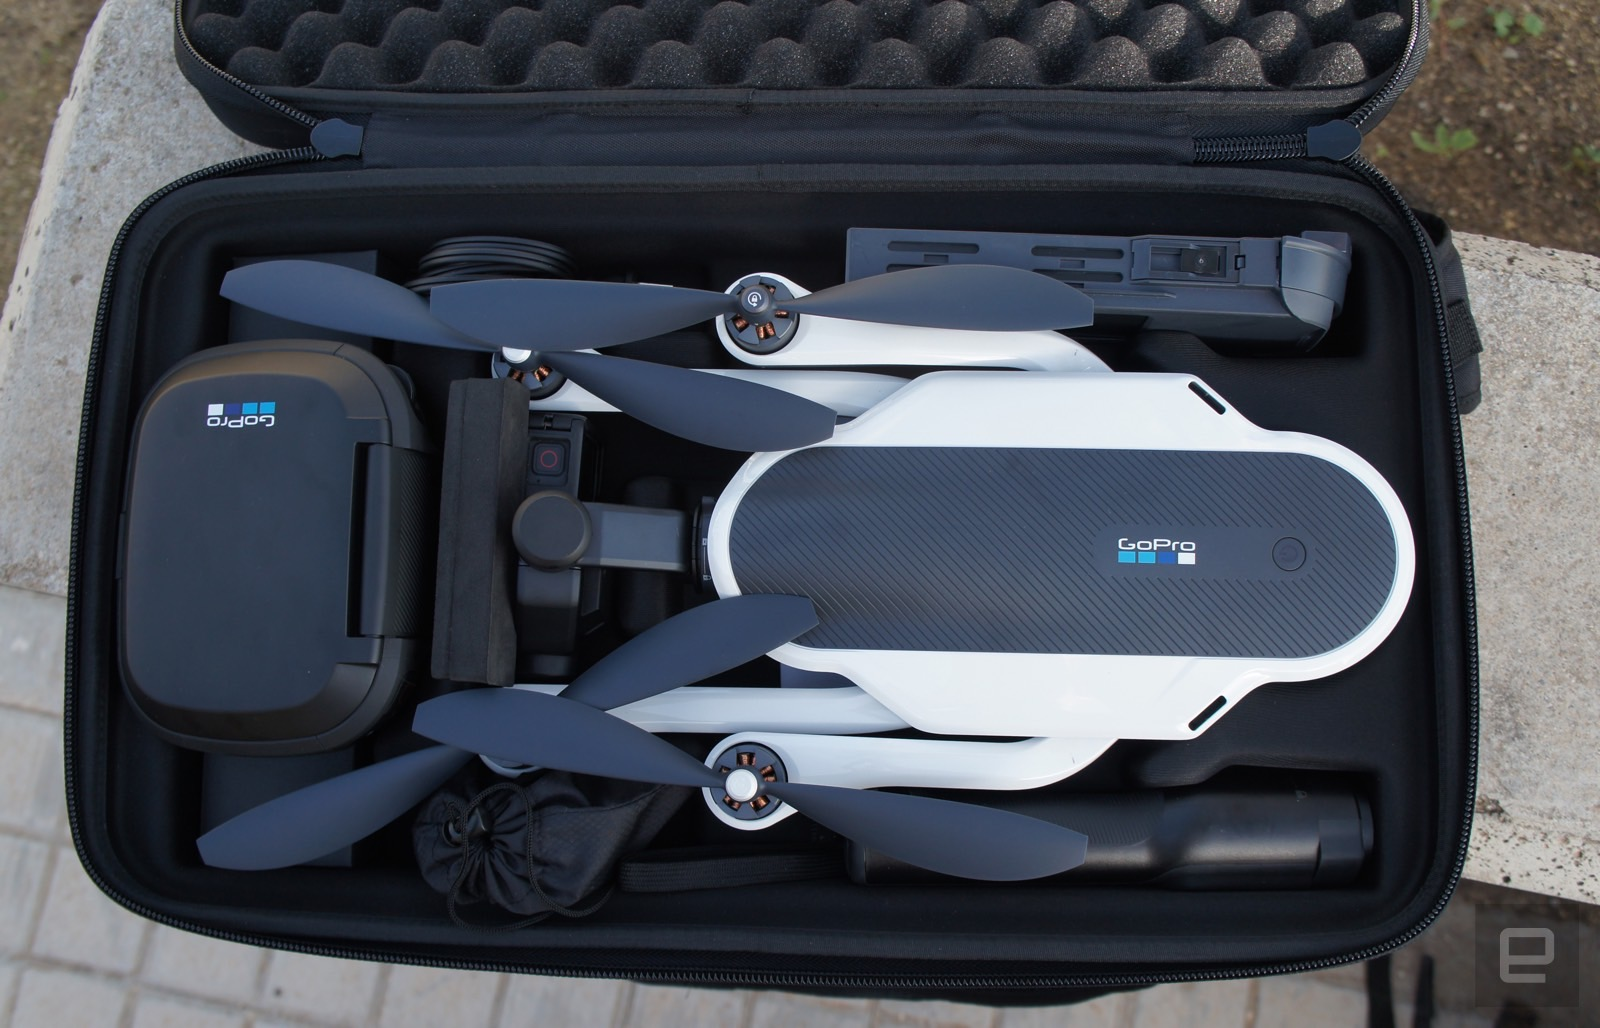 Gopro Karma Review A Decent Drone With Stiff Competition